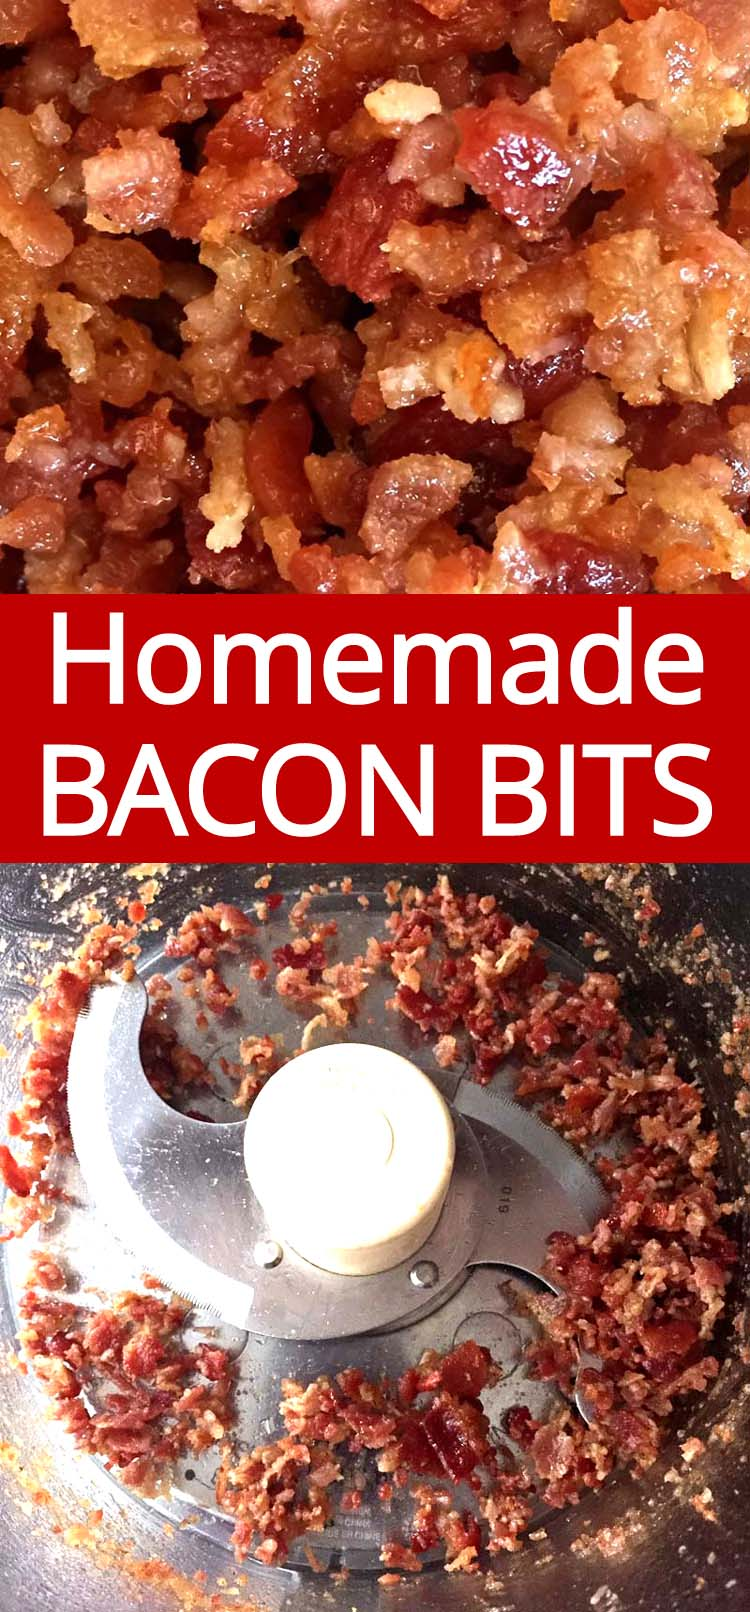 Once you try these homemade bacon bits made with real bacon, you'll never go back to packaged bacon crumbles!